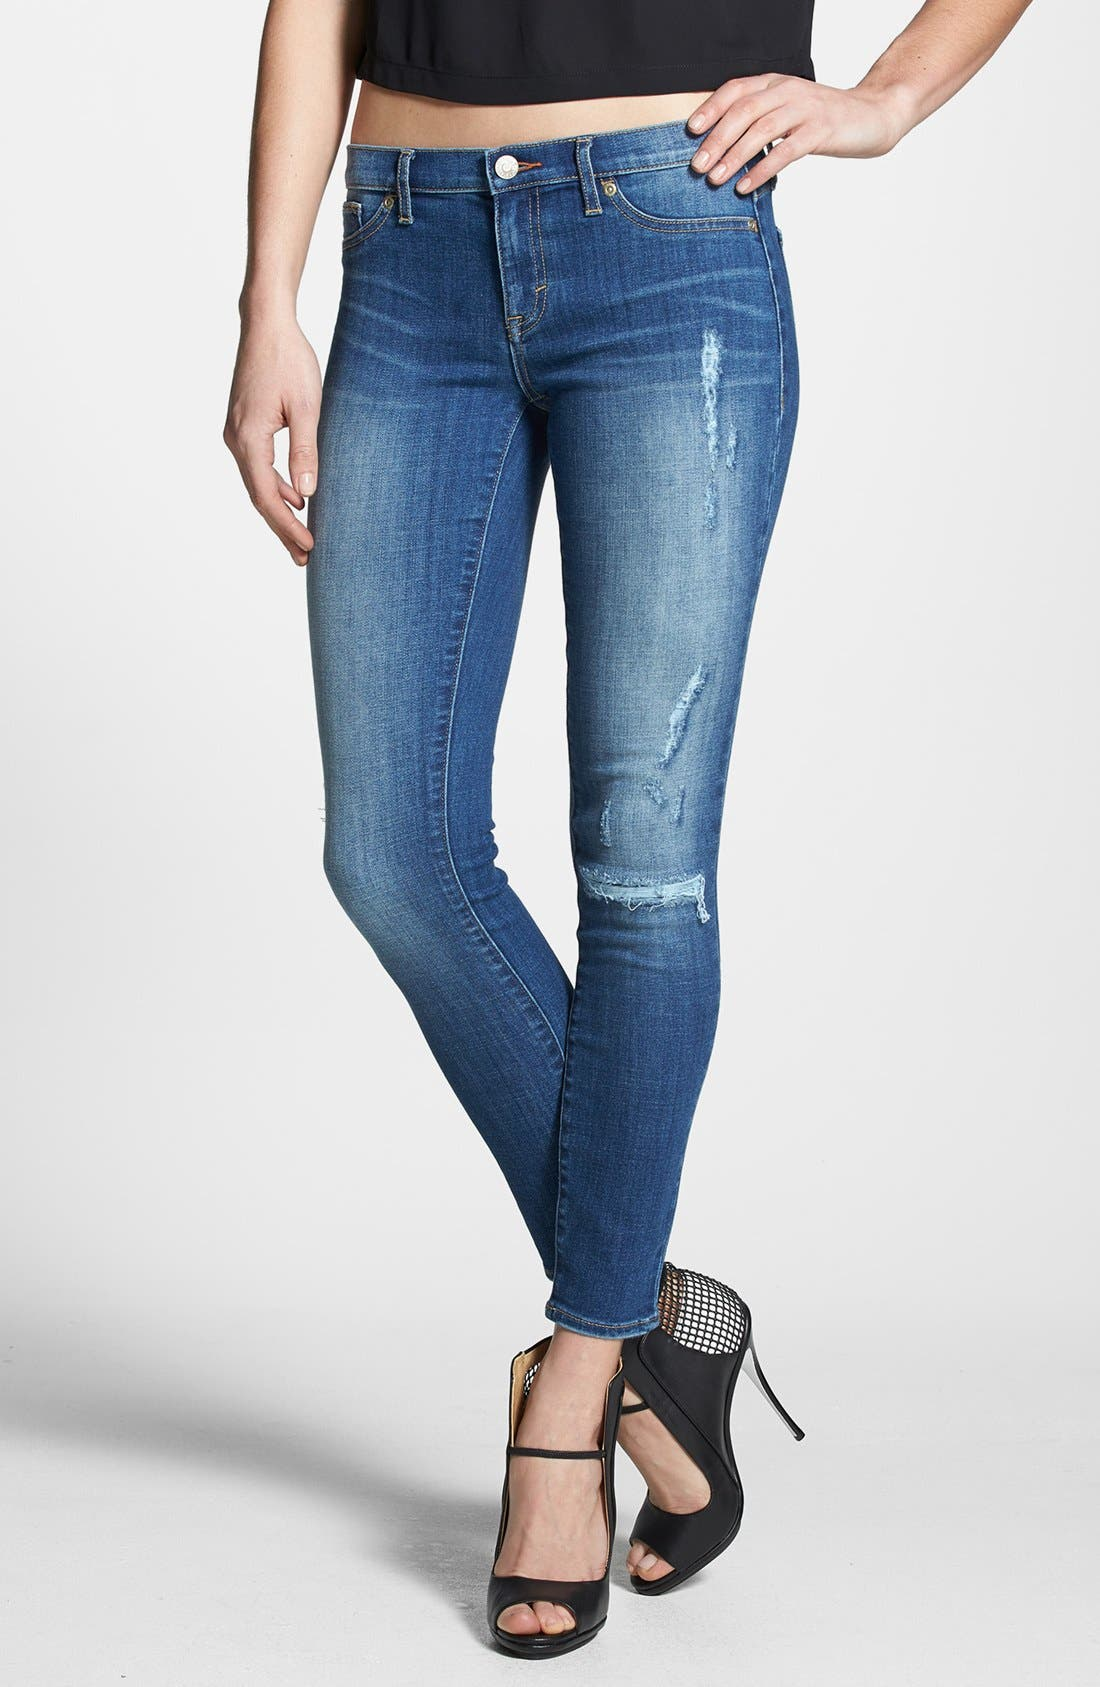 Main Image - Dittos 'Jessica' Distressed Low Rise Skinny Jeans (Calypso)